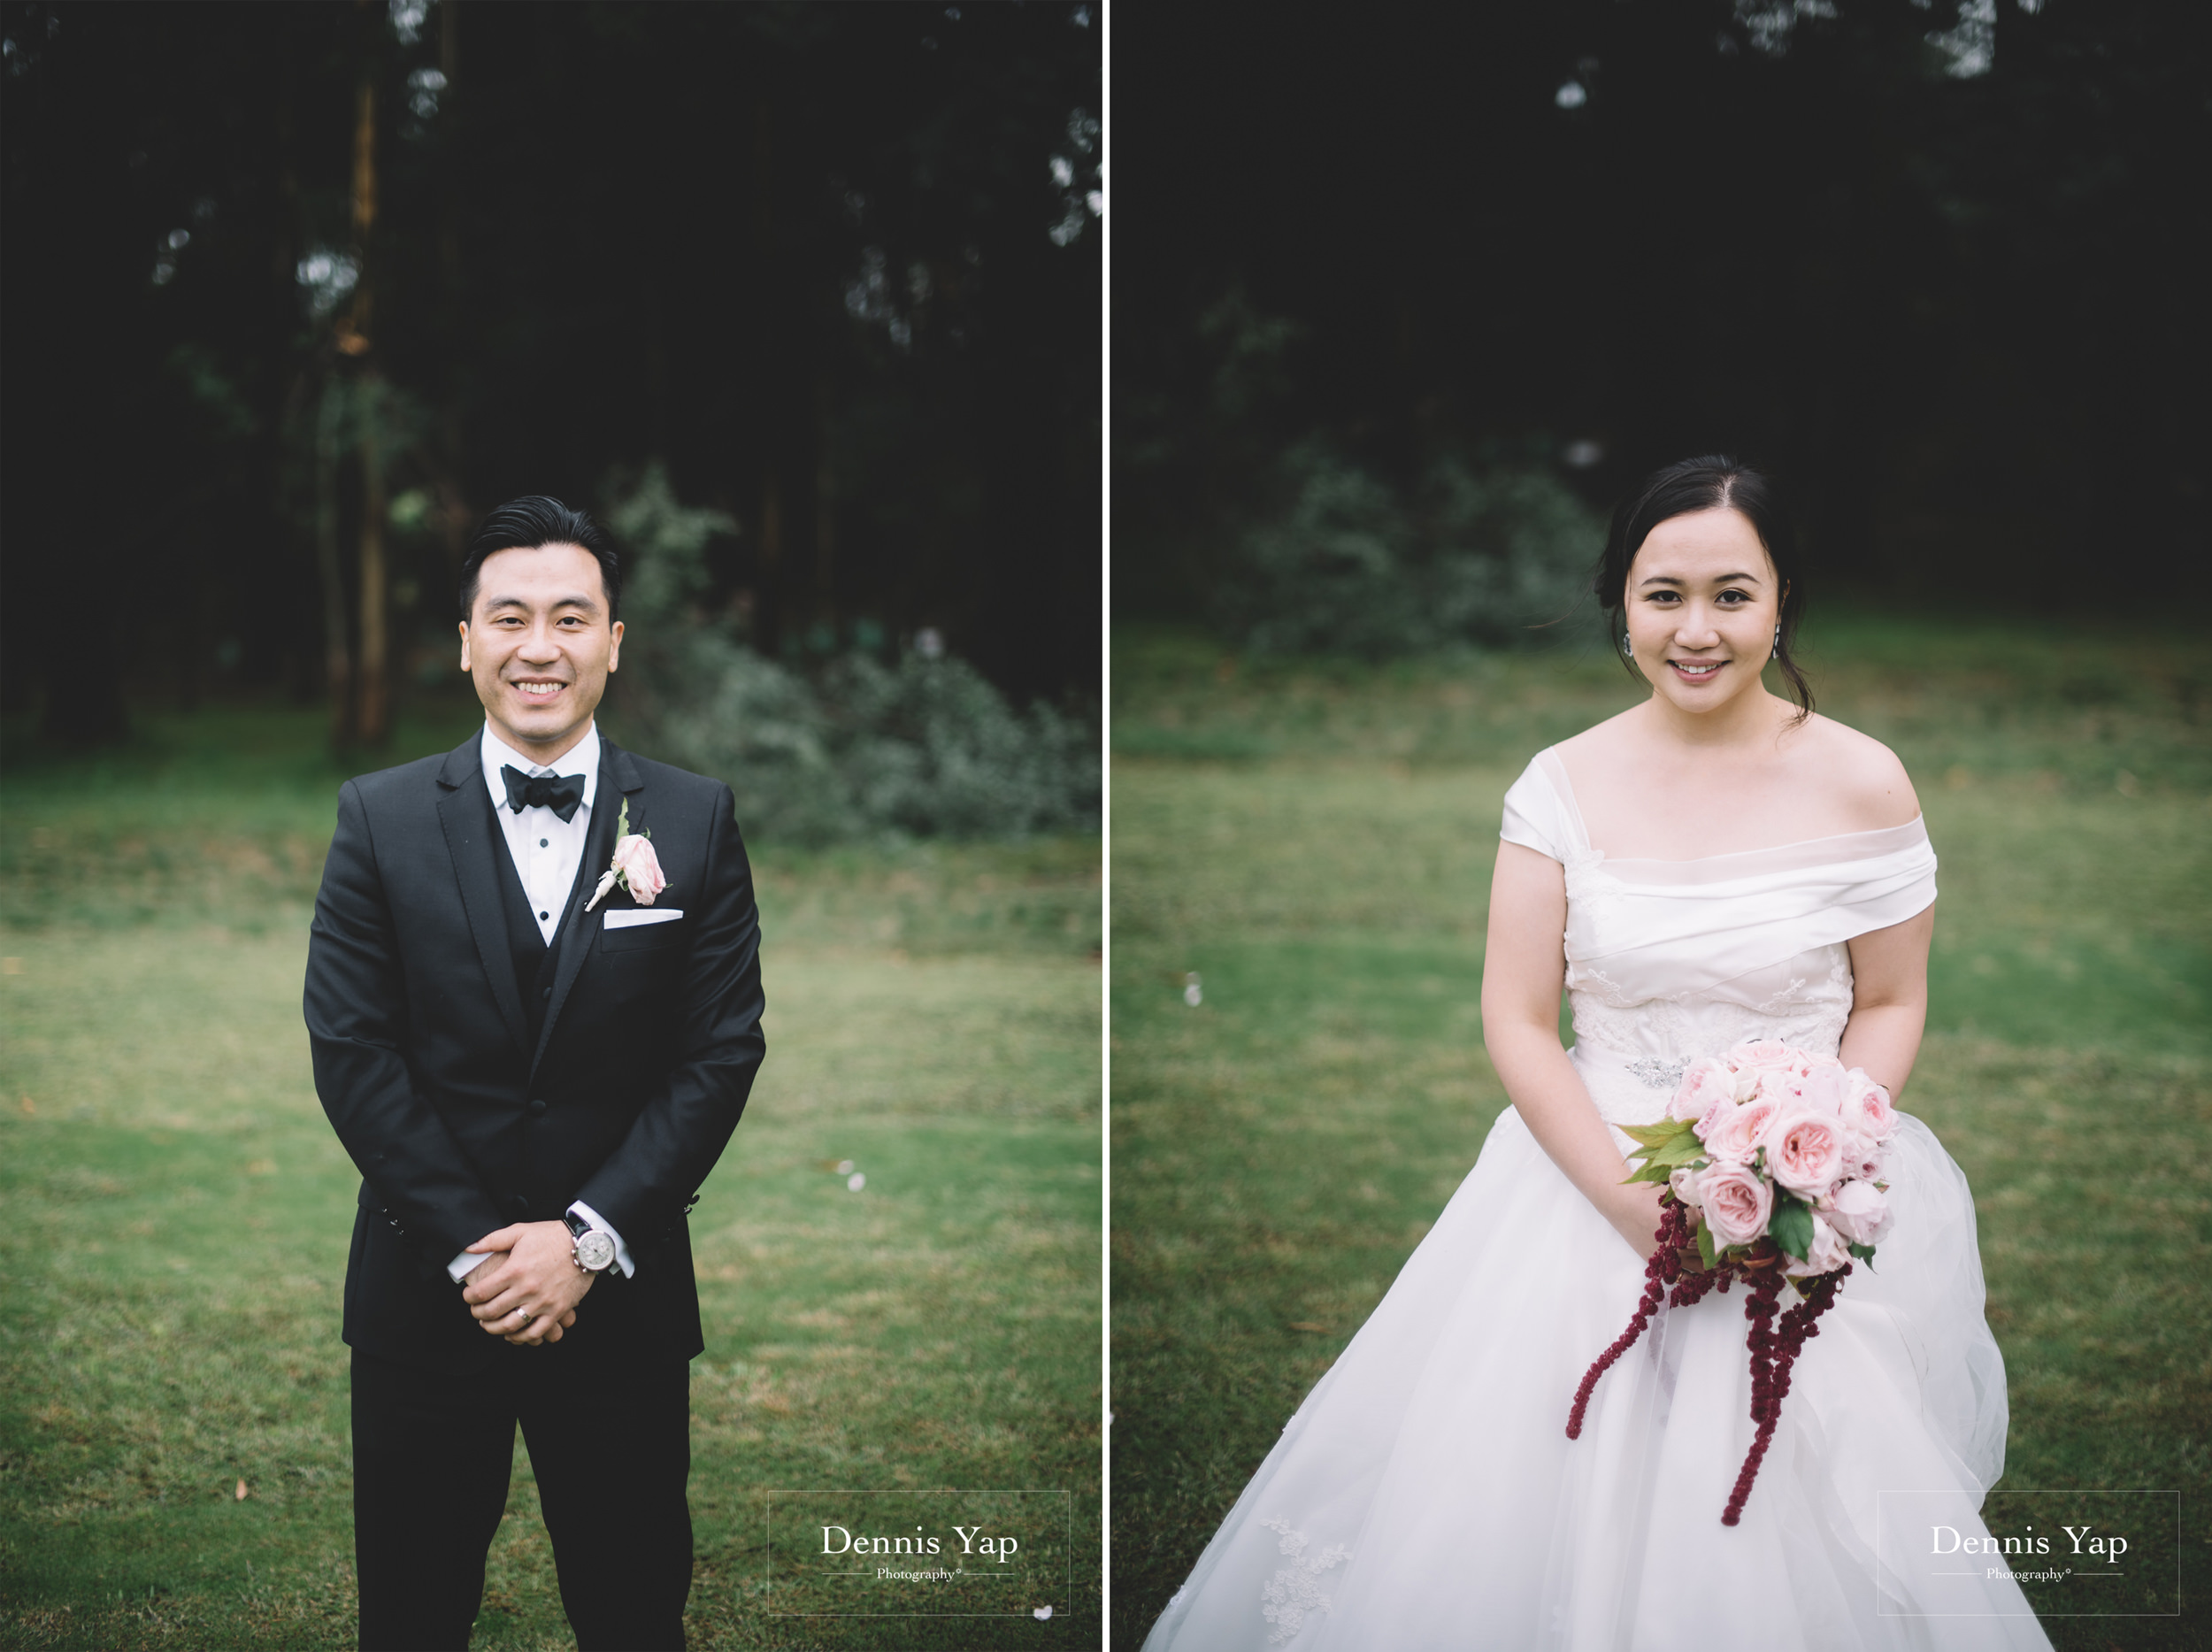 tony daphne wedding day melbourne RACV dennis yap photography malaysia top photographer beloved real moments-50.jpg